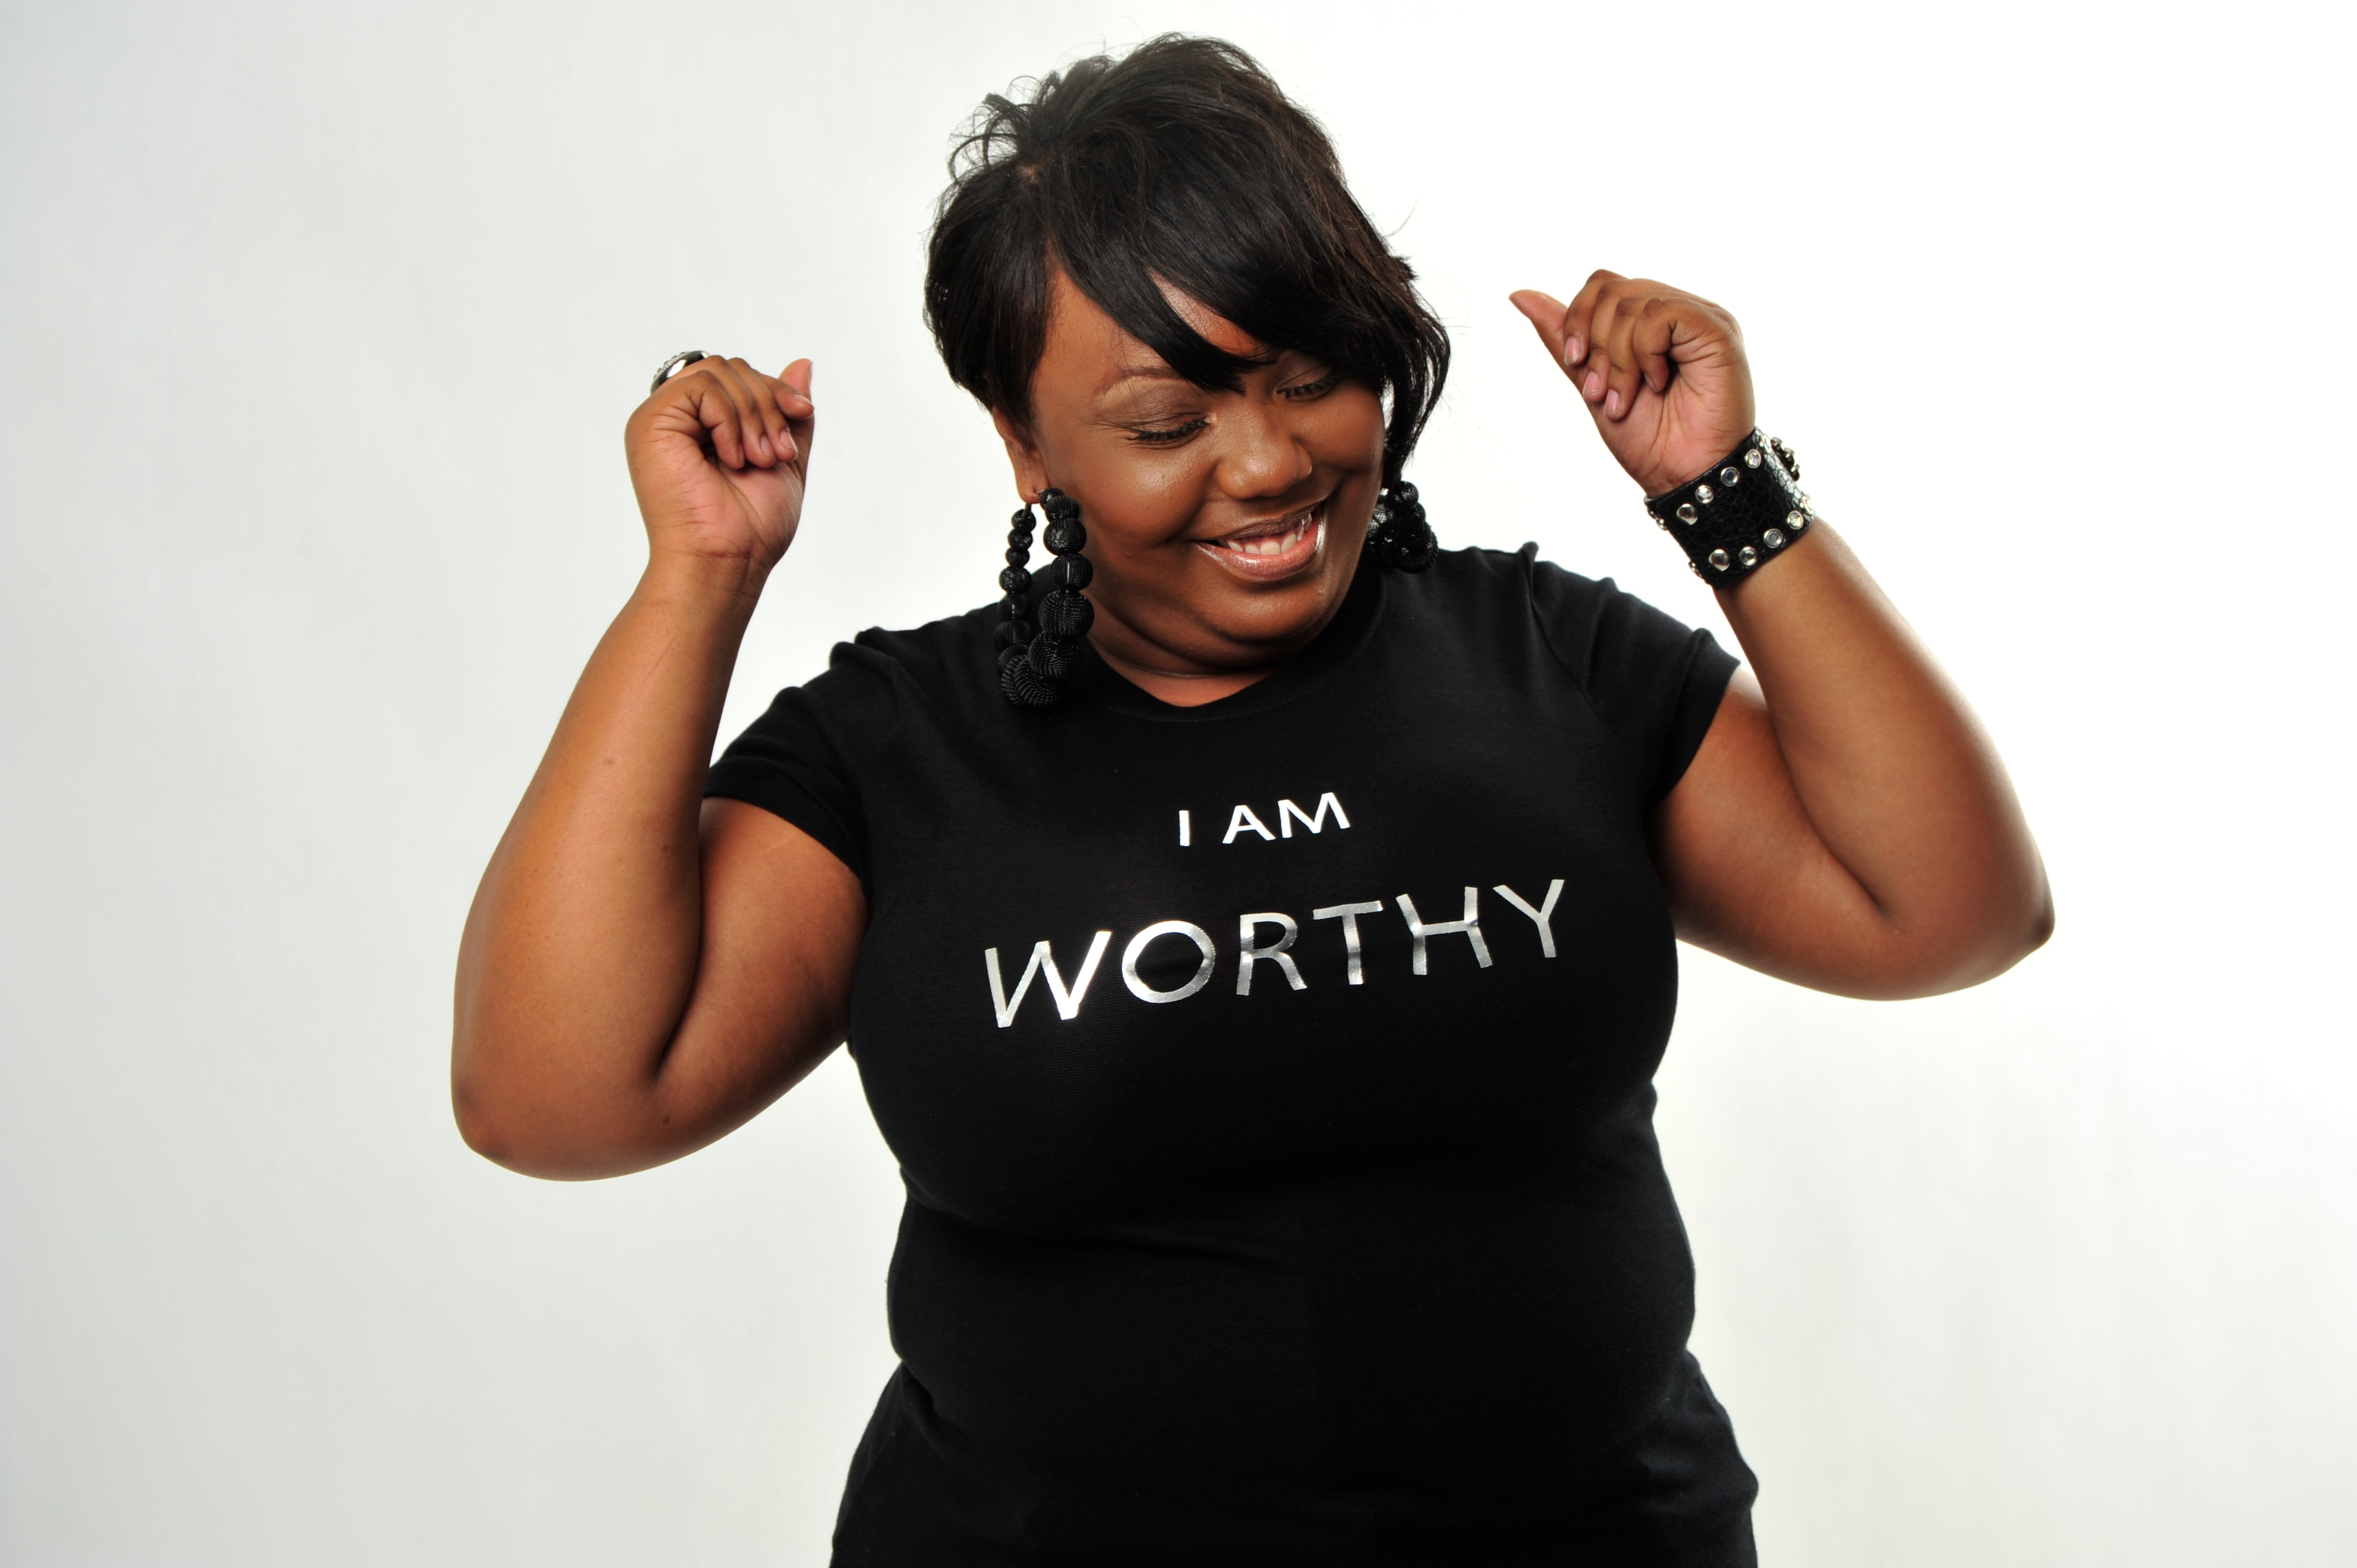 I AM Worthy Baby Doll Tee